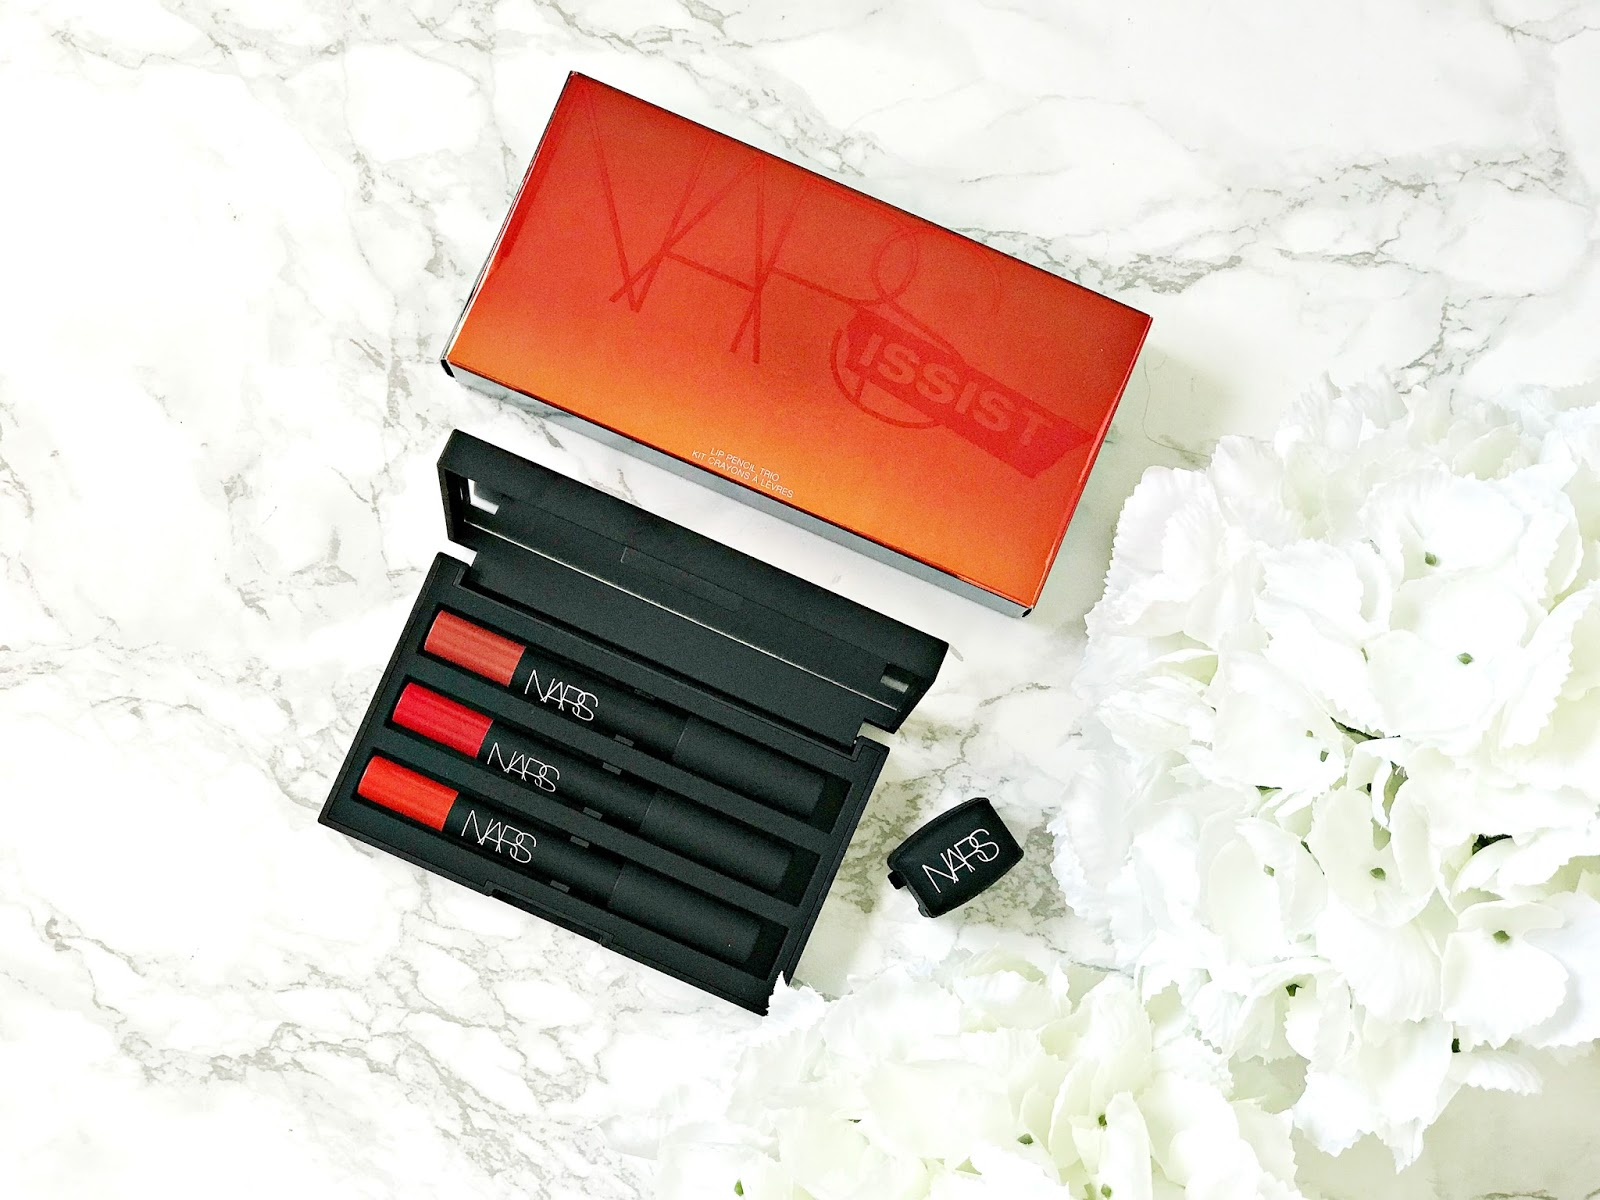 Nars Narsissist Lip Kit Review